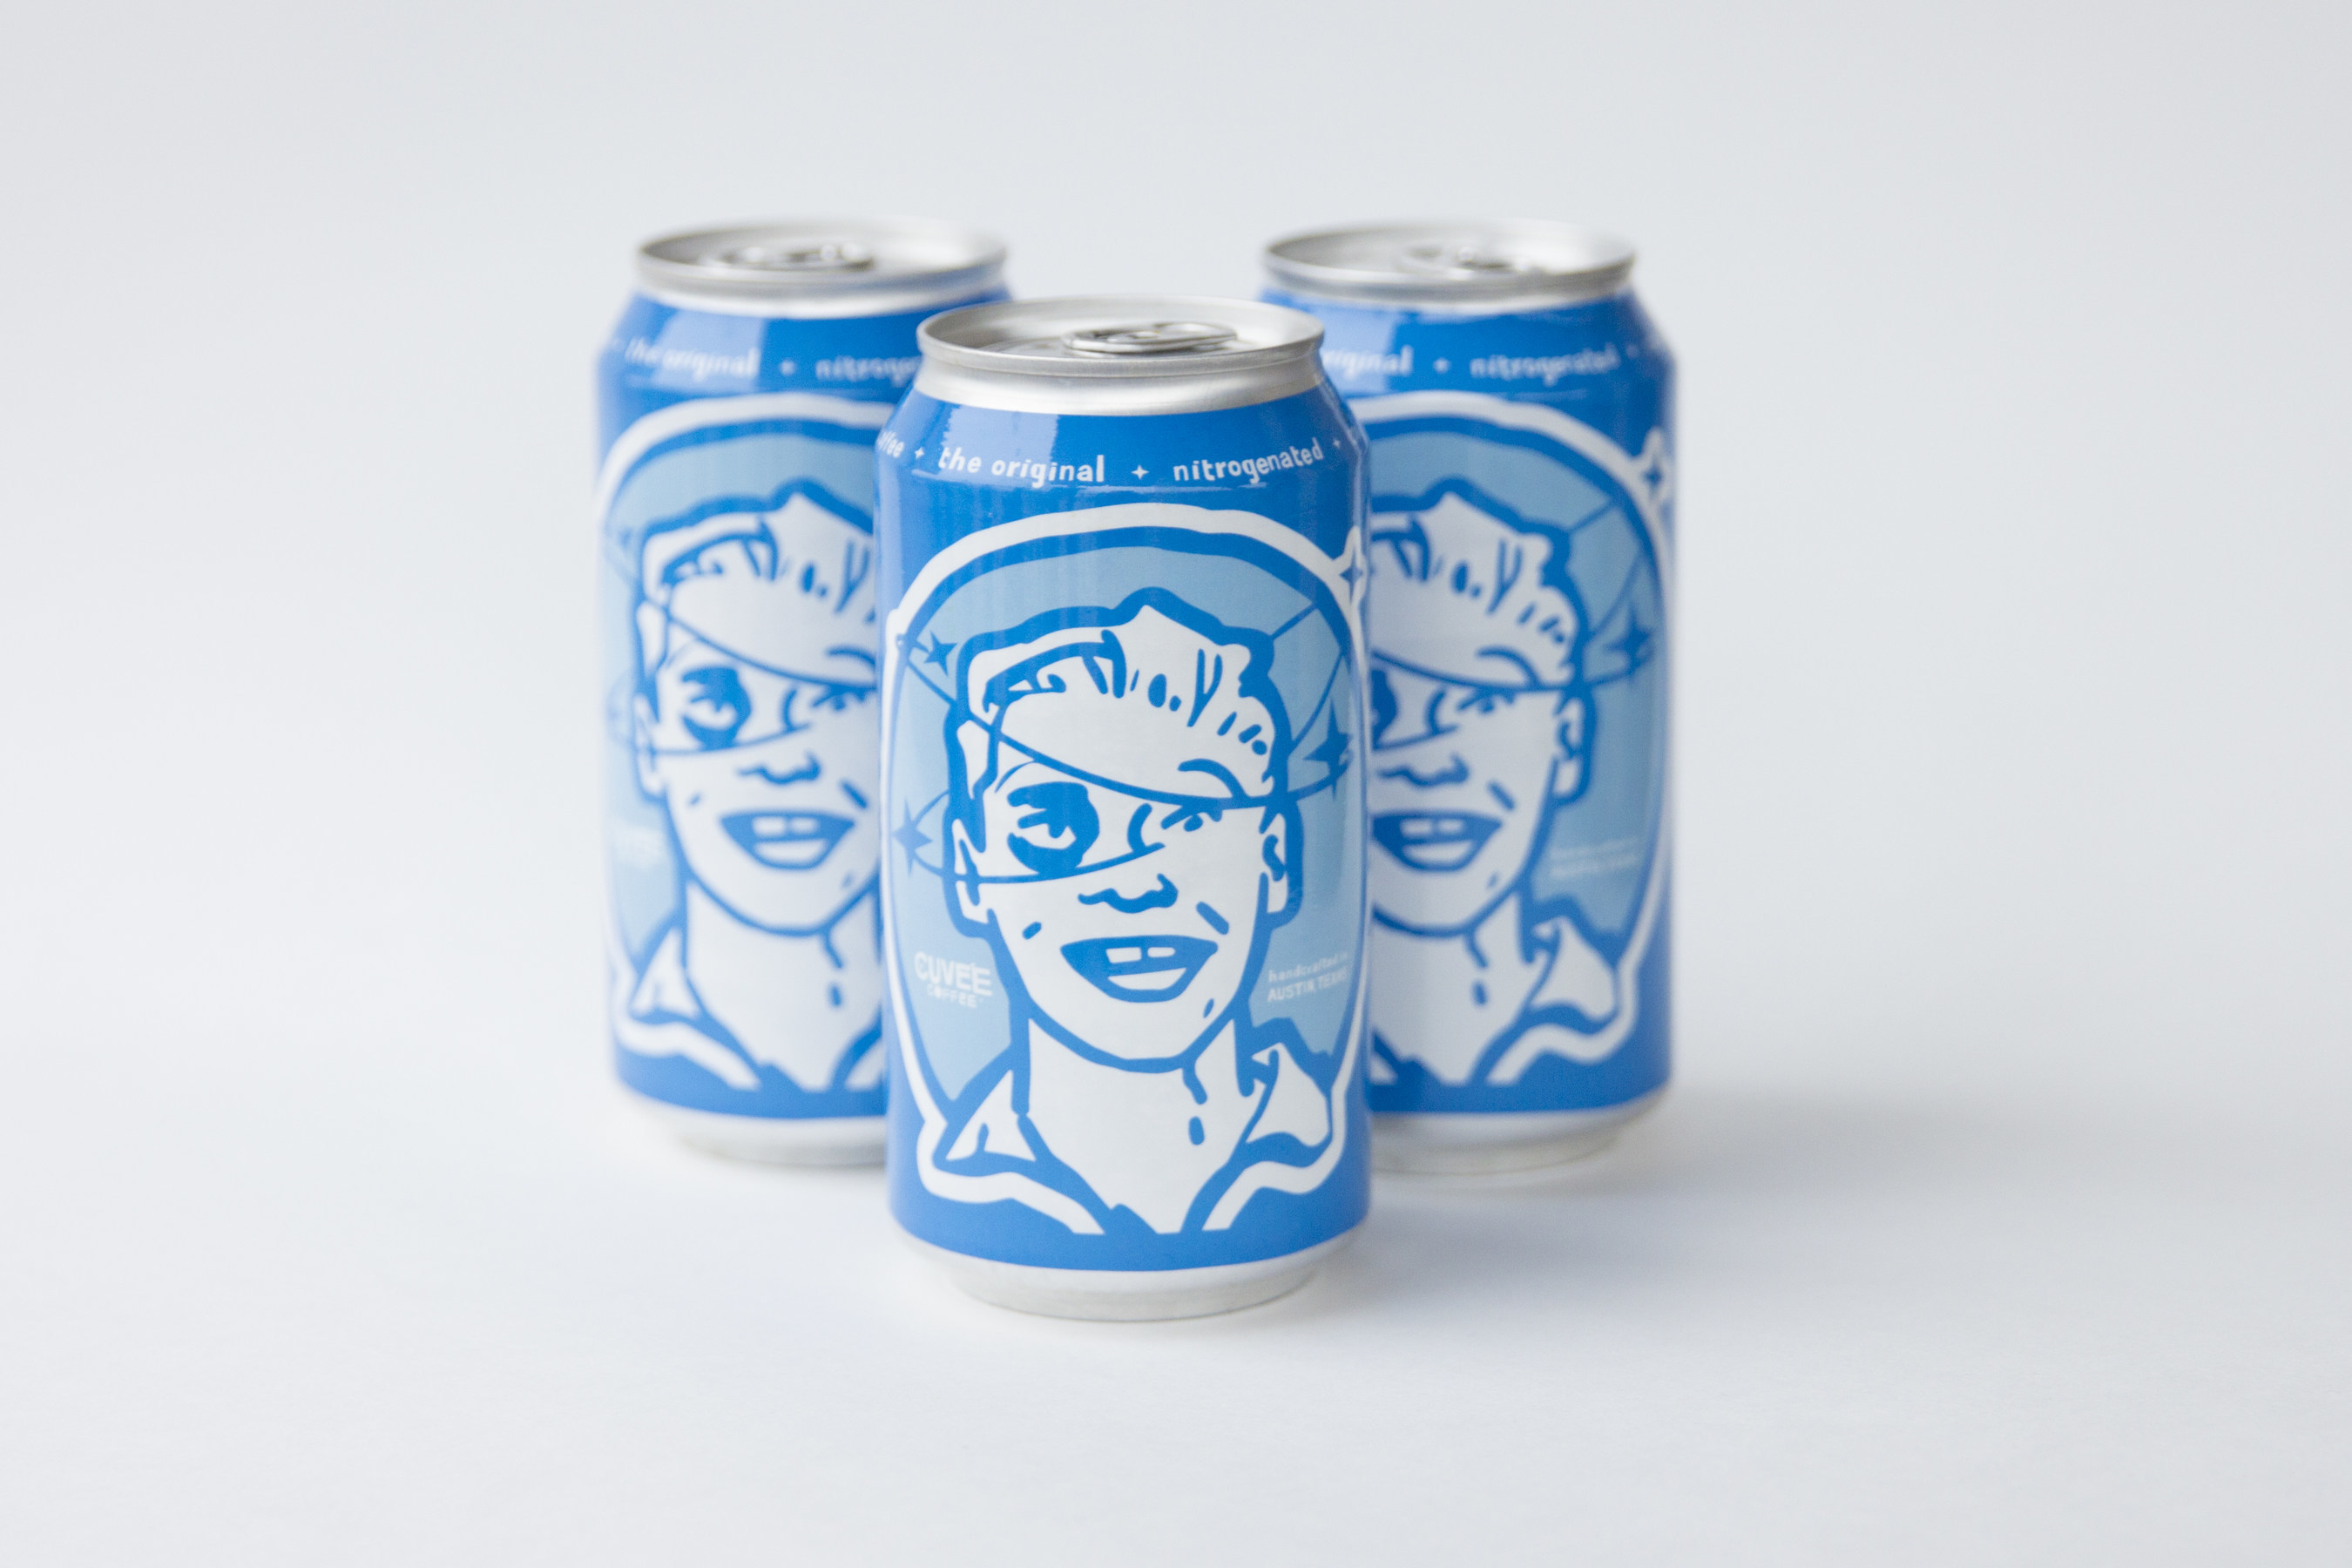 Cuvee Coffee's Black & Blue in nitro cans from Ball Corporation wins BevNET's Best of 2015 Award for ...